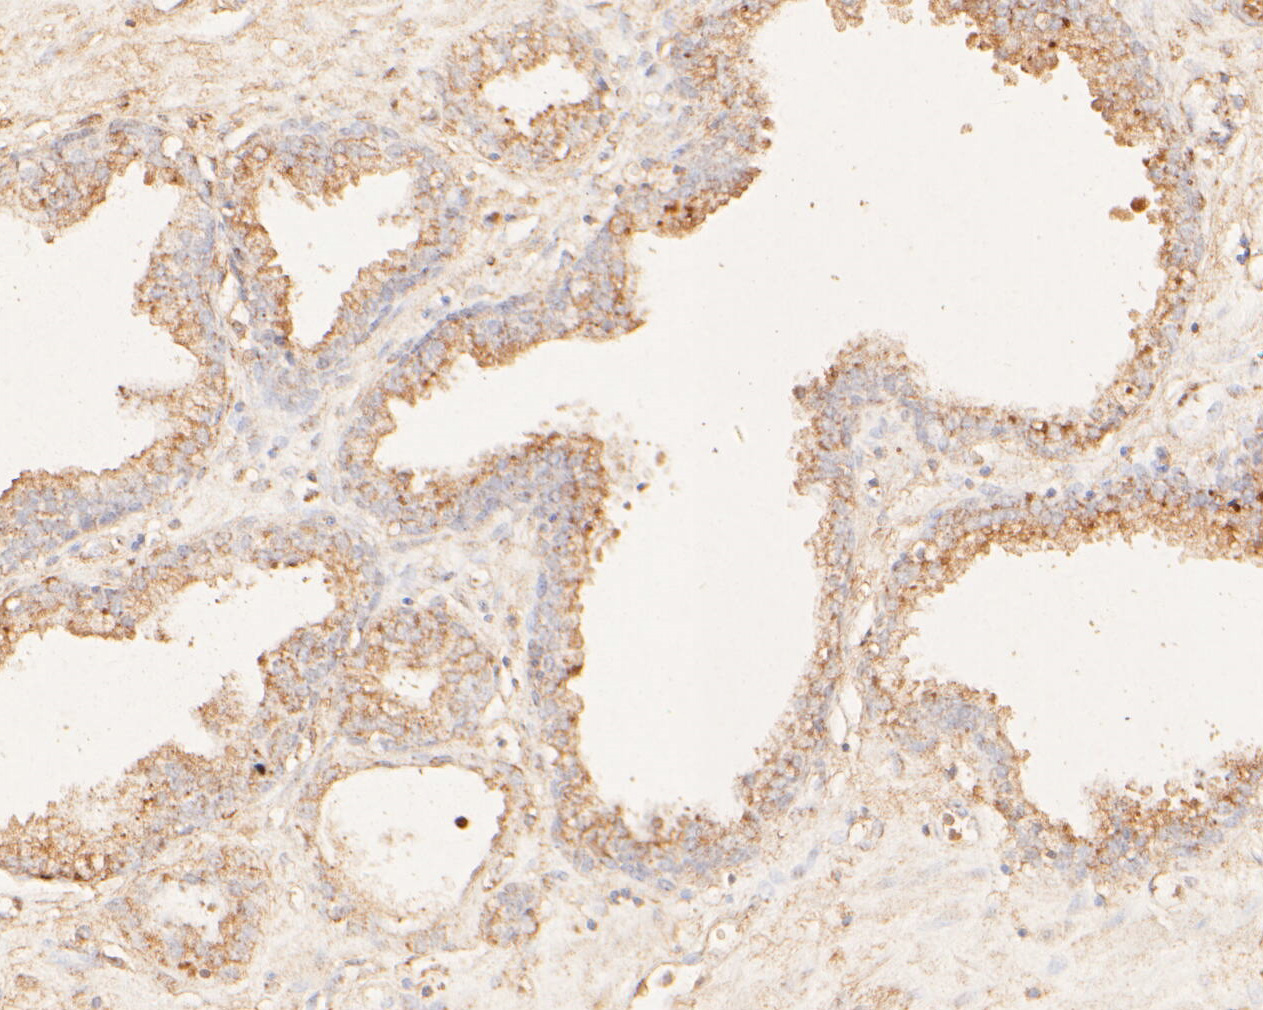 Immunohistochemical analysis of paraffin-embedded human prostate carcinoma tissue using anti-MAGT1 antibody. The section was pre-treated using heat mediated antigen retrieval with Tris-EDTA buffer (pH 8.0-8.4) for 20 minutes.The tissues were blocked in 5% BSA for 30 minutes at room temperature, washed with ddH2O and PBS, and then probed with the primary antibody (ER1902-99, 1/50) for 30 minutes at room temperature. The detection was performed using an HRP conjugated compact polymer system. DAB was used as the chromogen. Tissues were counterstained with hematoxylin and mounted with DPX.